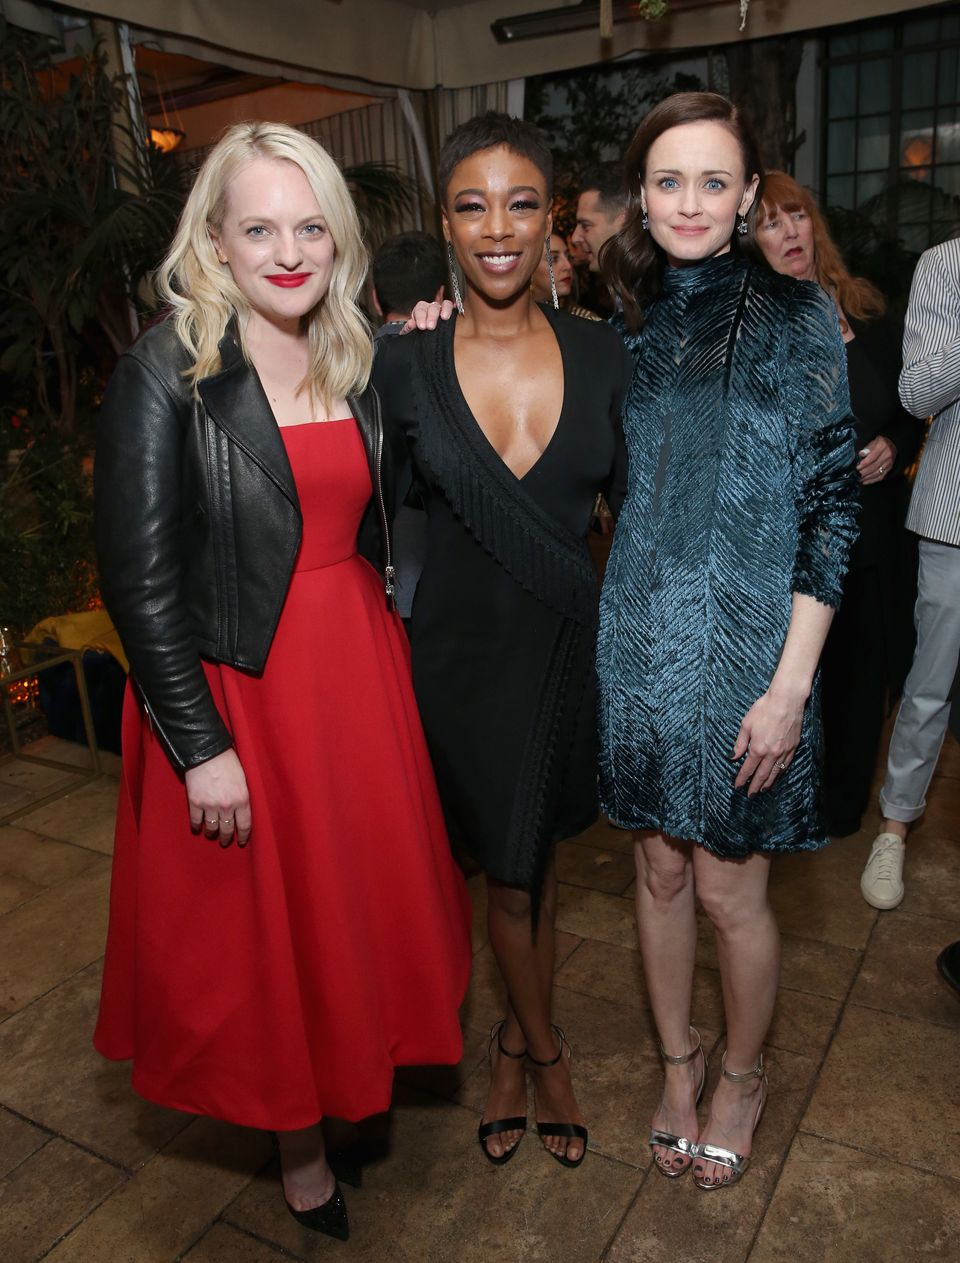 LOS ANGELES, CA - APRIL 19:  (L-R) Elisabeth Moss, Samira Wiley, and Alexis Bledel attend the premiere of Hulu's 'The Handmai